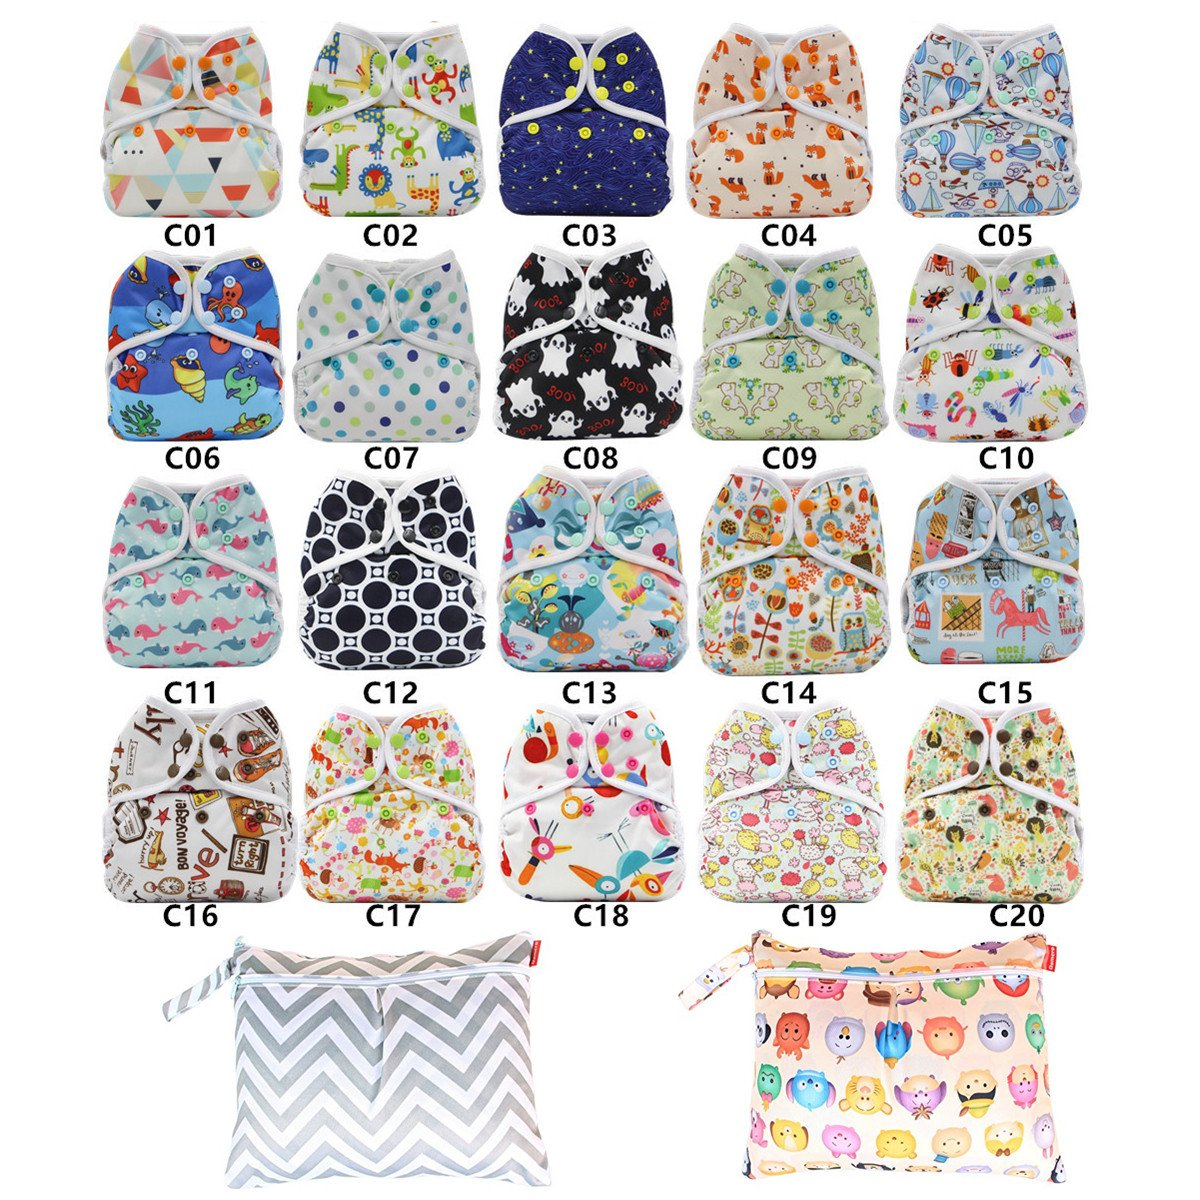 Newborn Infant Baby Cloth Diaper cover, Reusable, Washable, Adjustable (10PCS Diaper cover+2 Wet Bag) CN